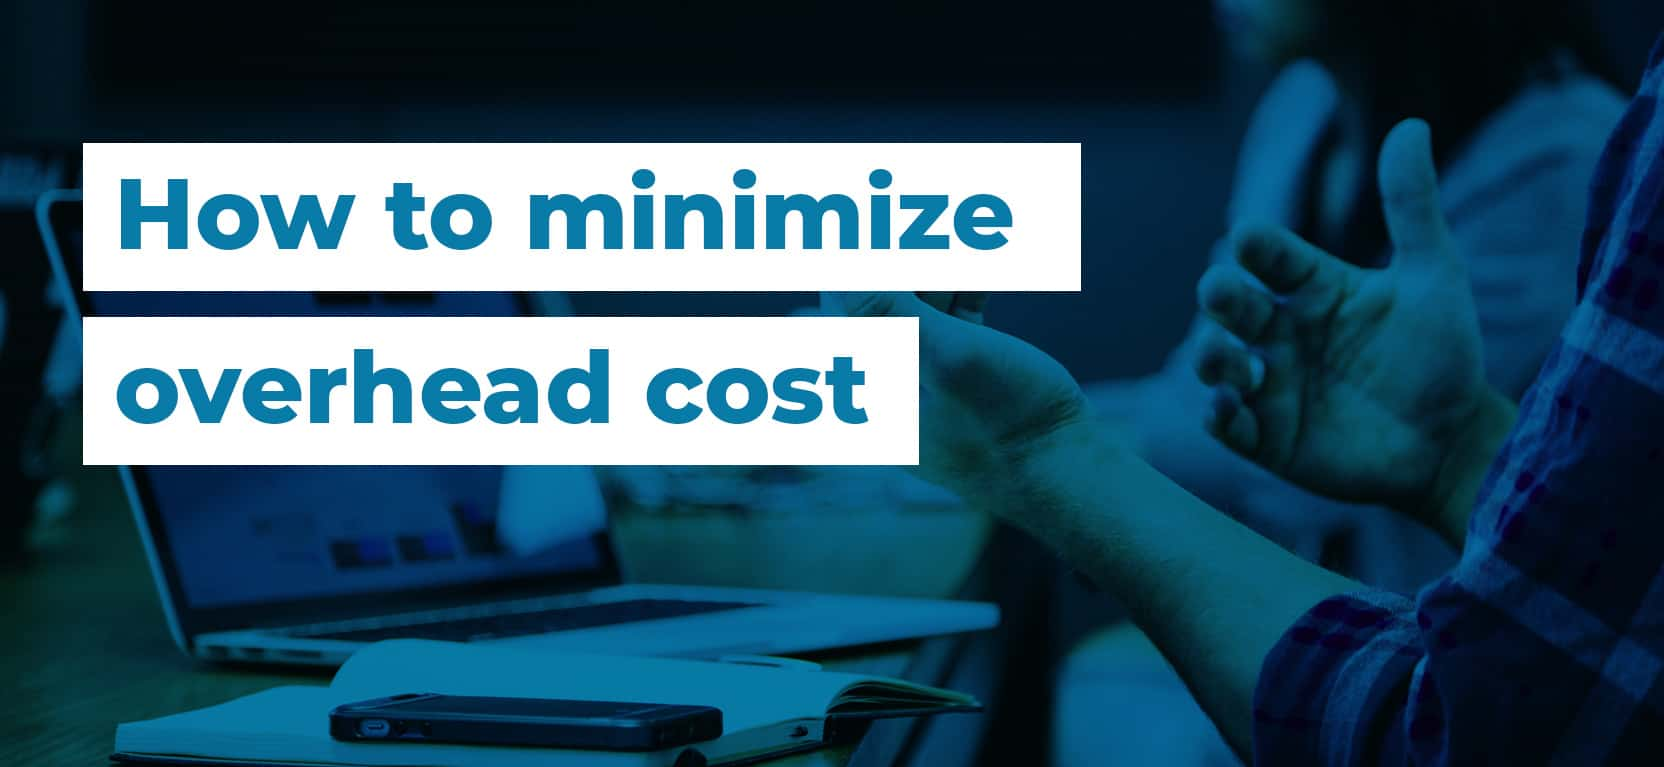 30 How to minimize overhead cost2